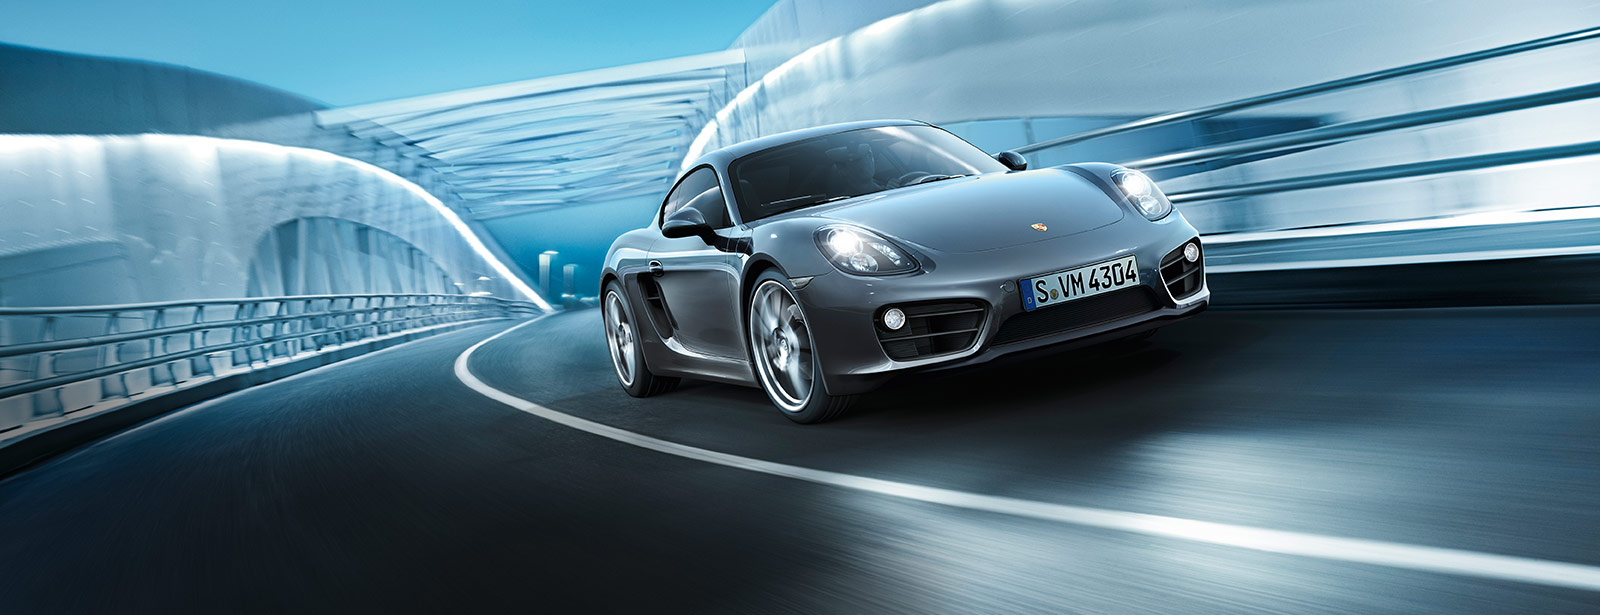 how to get into engine compartment of porsche boxster